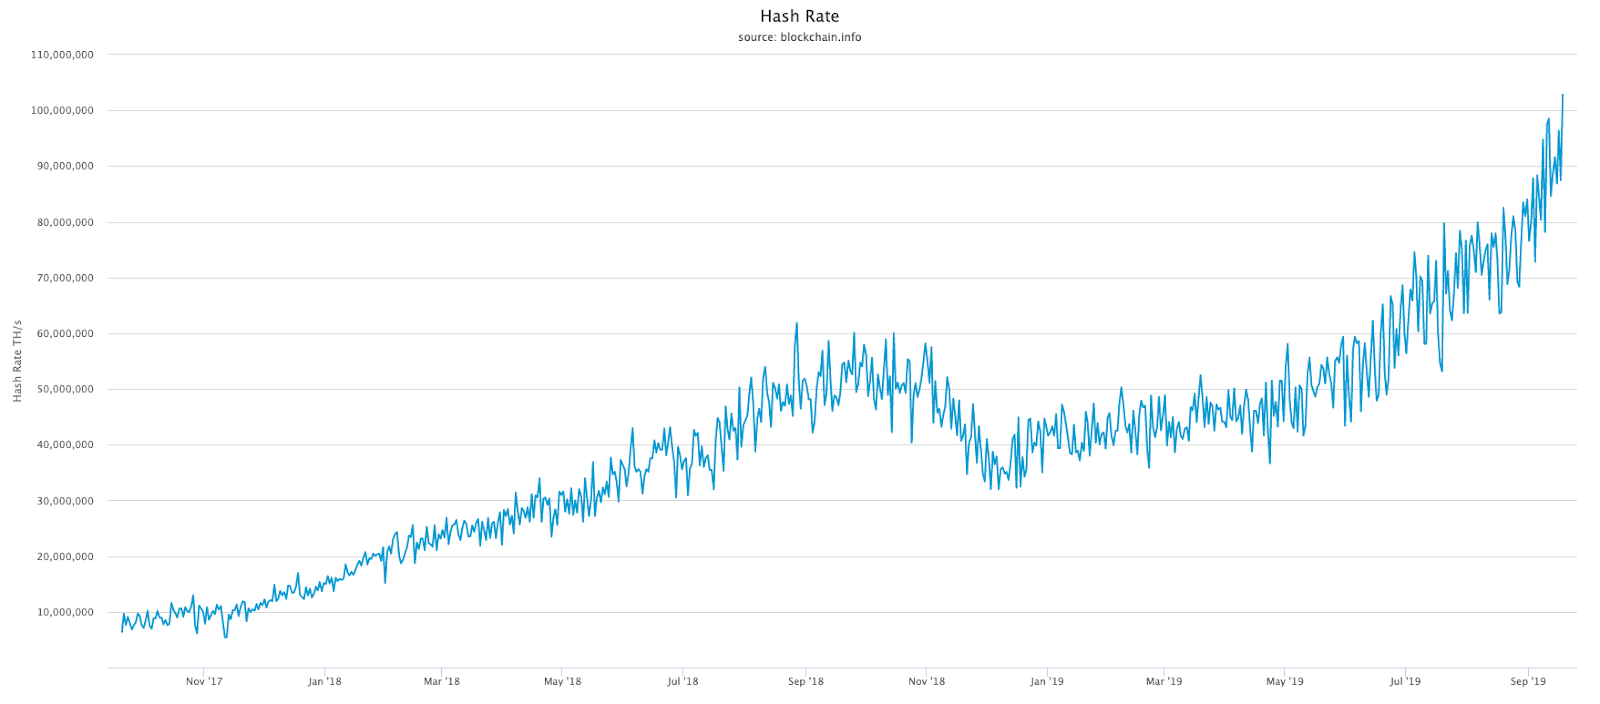 Bitcoin hash rate over past two years.